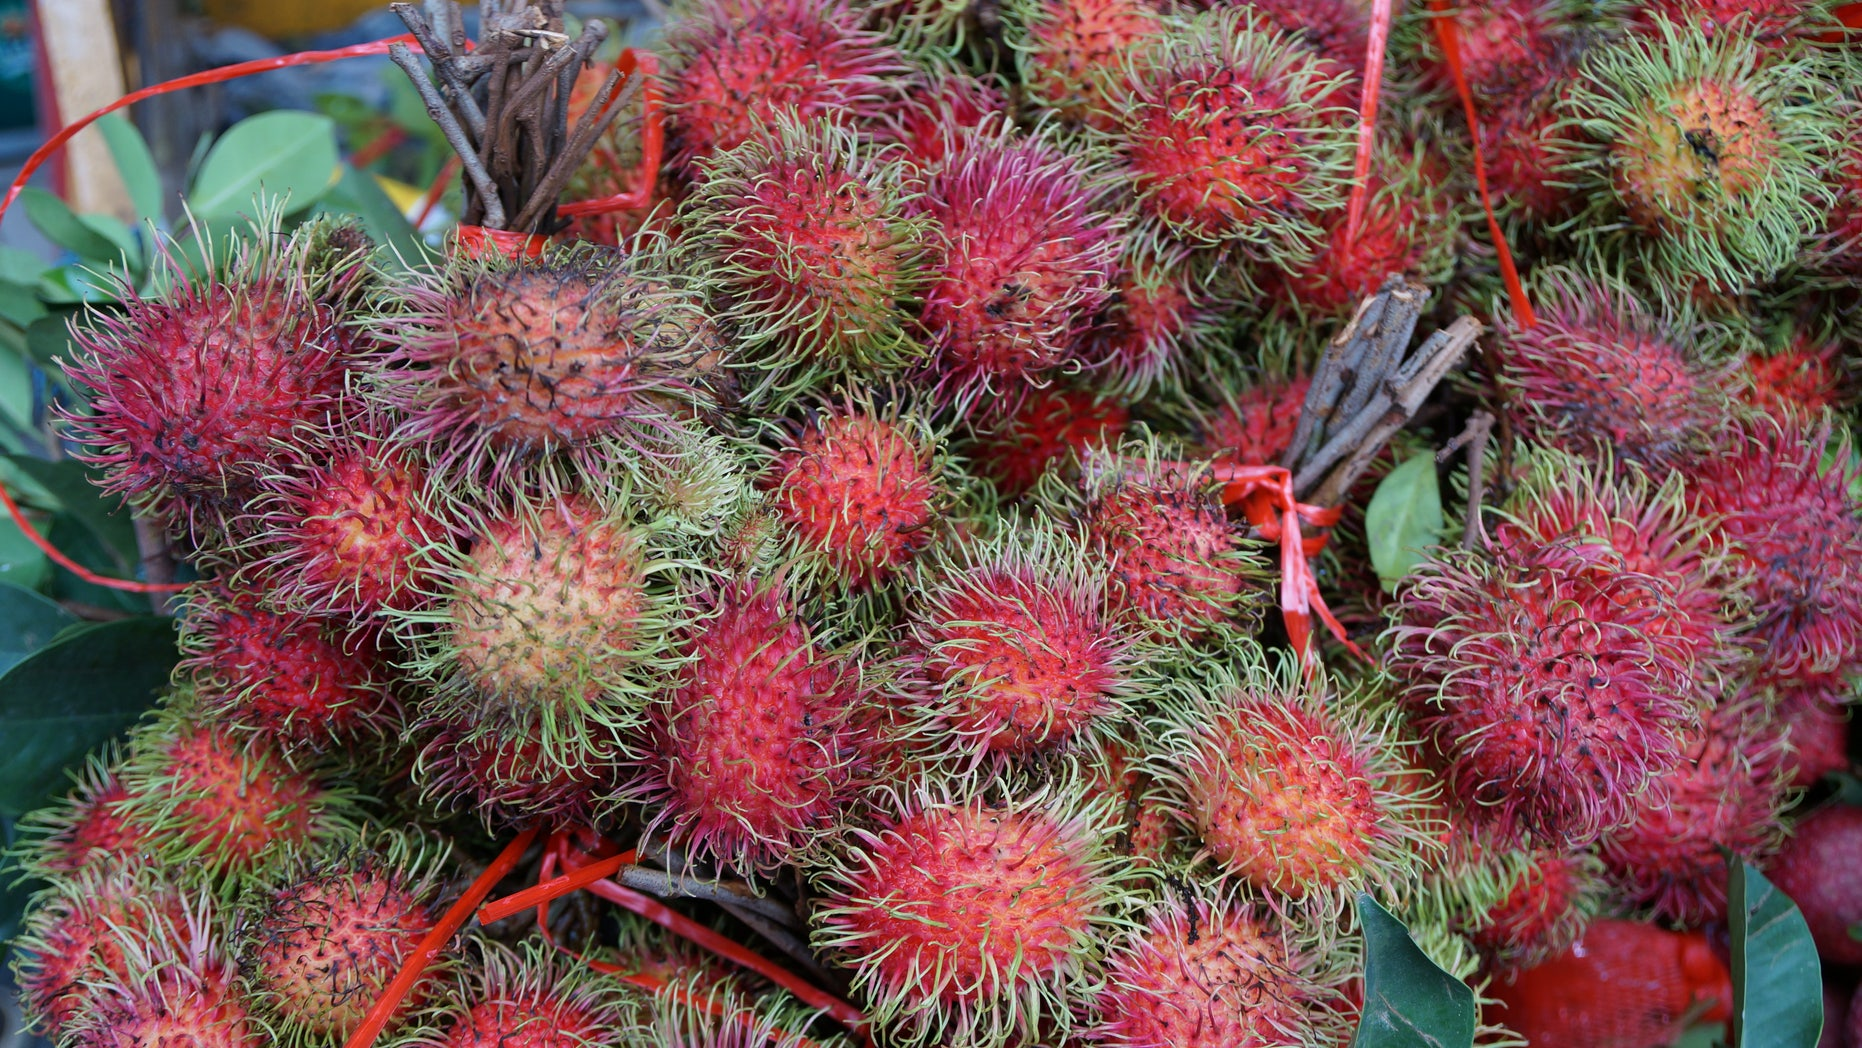 Rambutan: The next popular super fruit? | Fox News